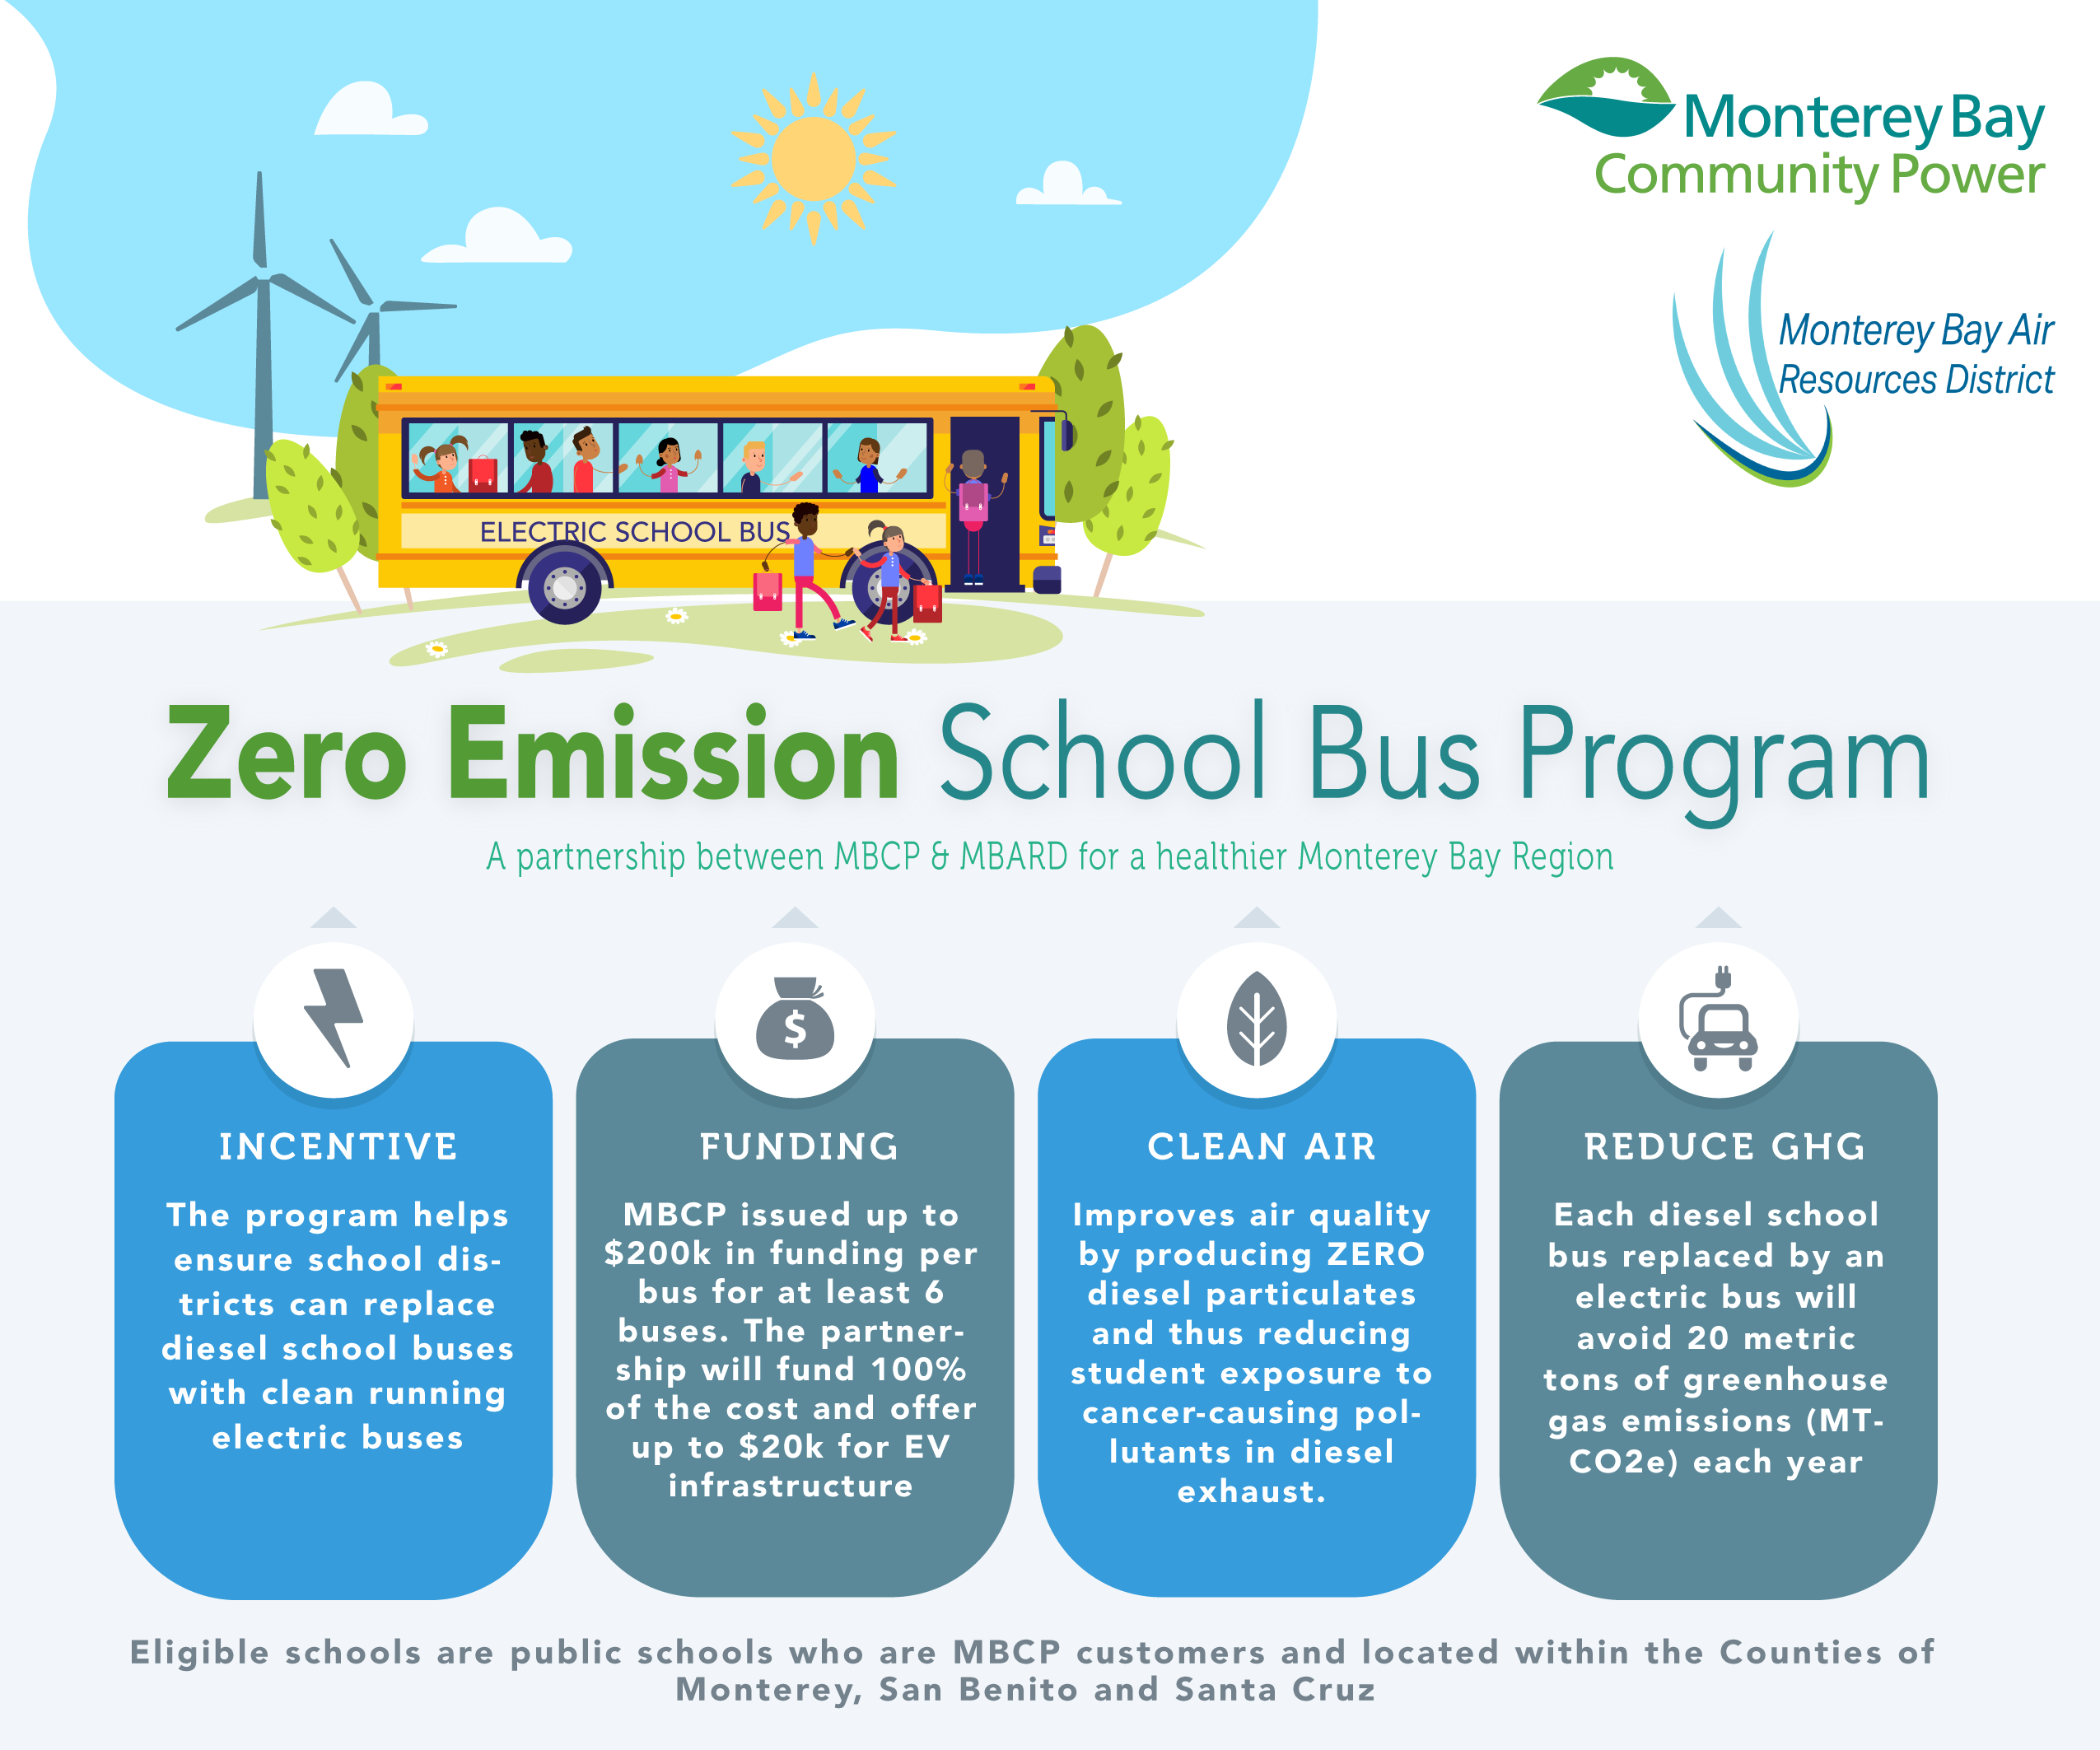 MBCP Partners with Monterey Bay Air Resources District to Electrifying Our Community's School Buses for a Cleaner, Healthier Monterey Bay Region